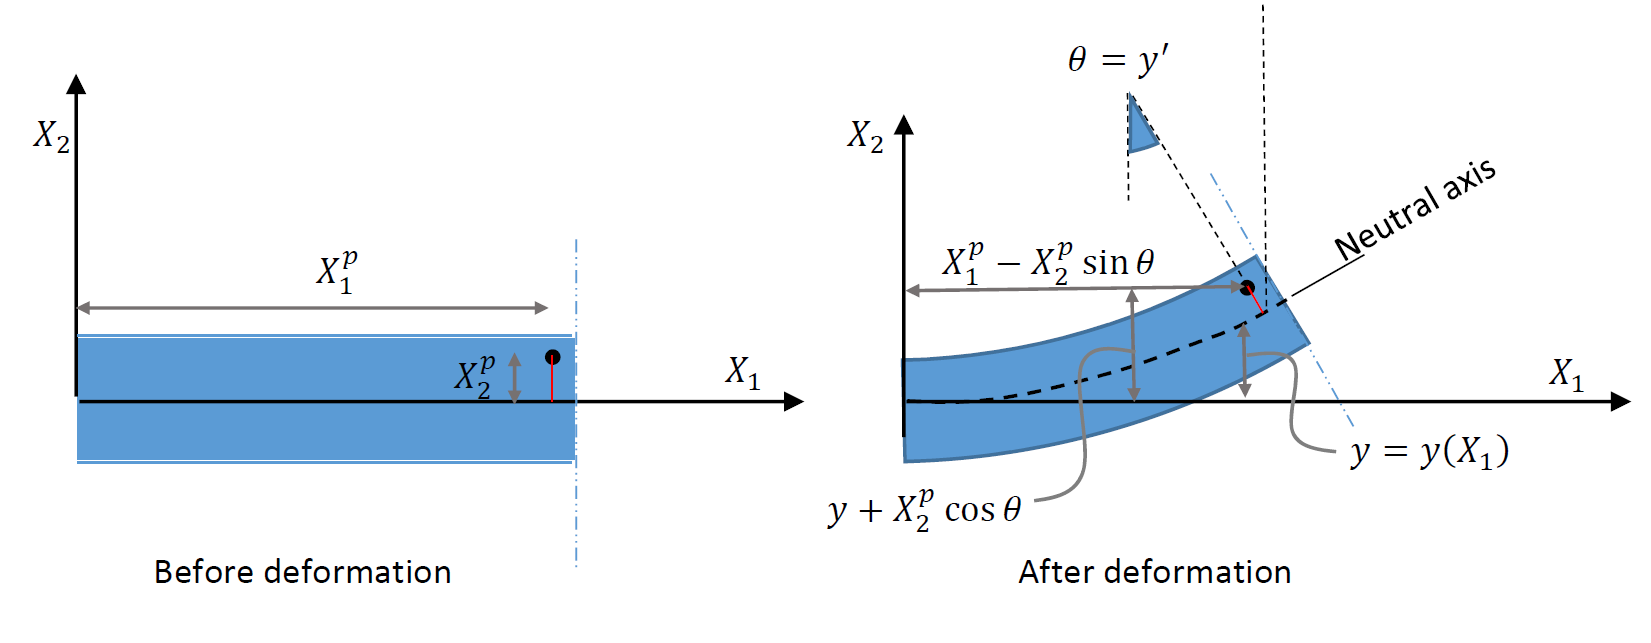 Figure 1.  Deformation assumption for beams. The black dot represents an arbitrary point before and after deformation. Plane sections perpendicular to the neutral axis remain plane and perpendicular to the neutral axis after deformation. The coordinates of the point after deformation can be obtained accordingly.